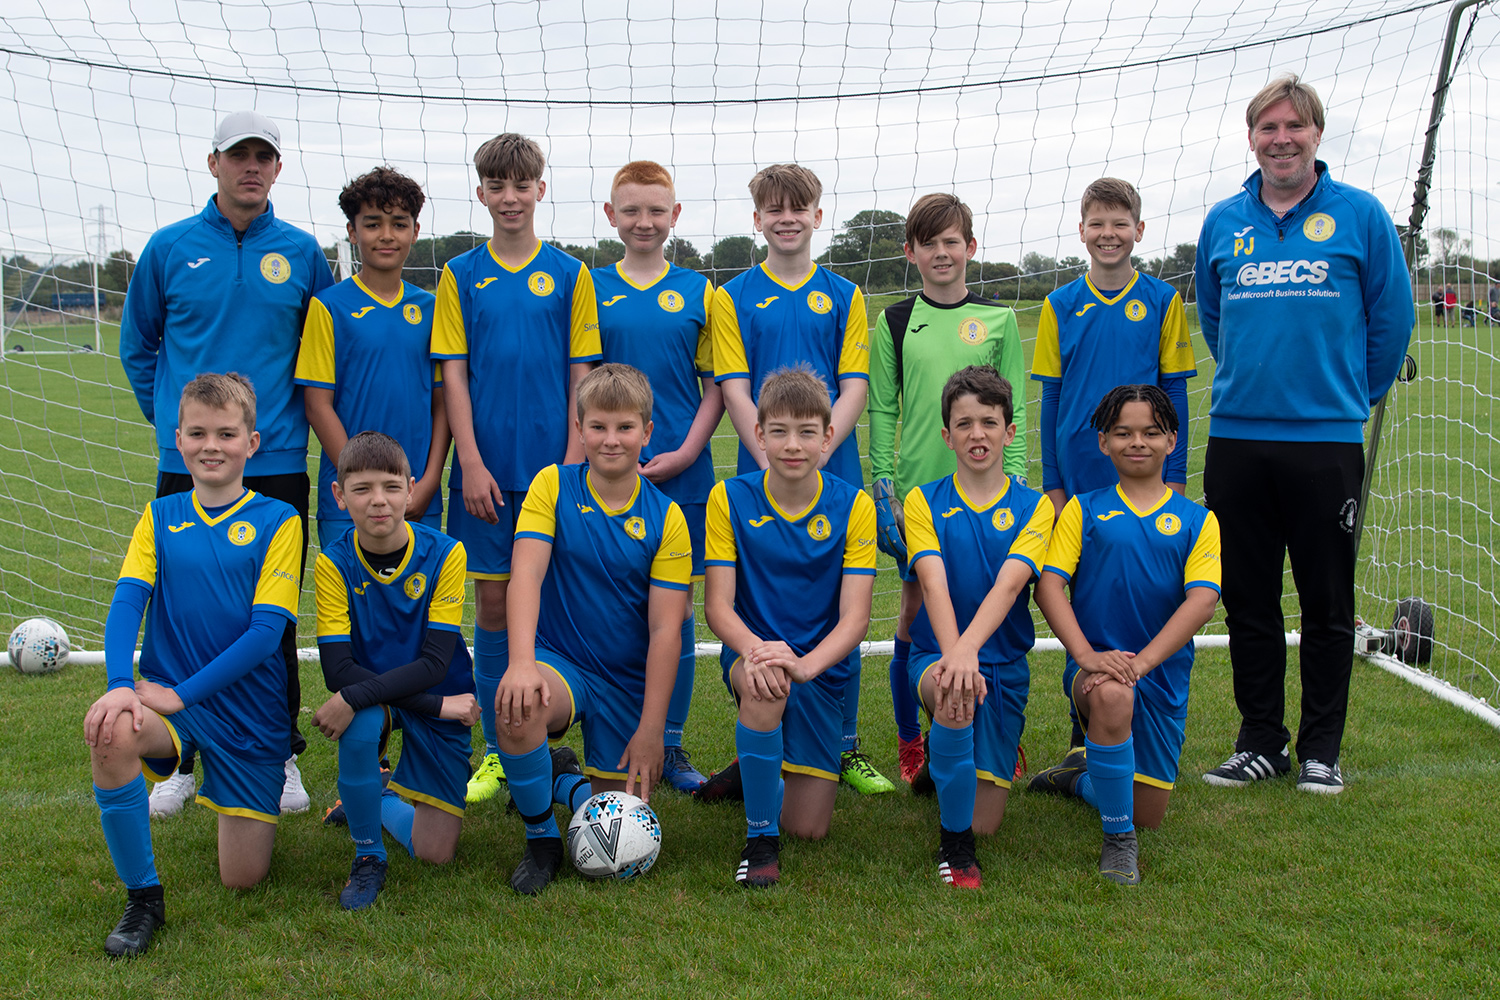 Under 13 Blue Team Photo